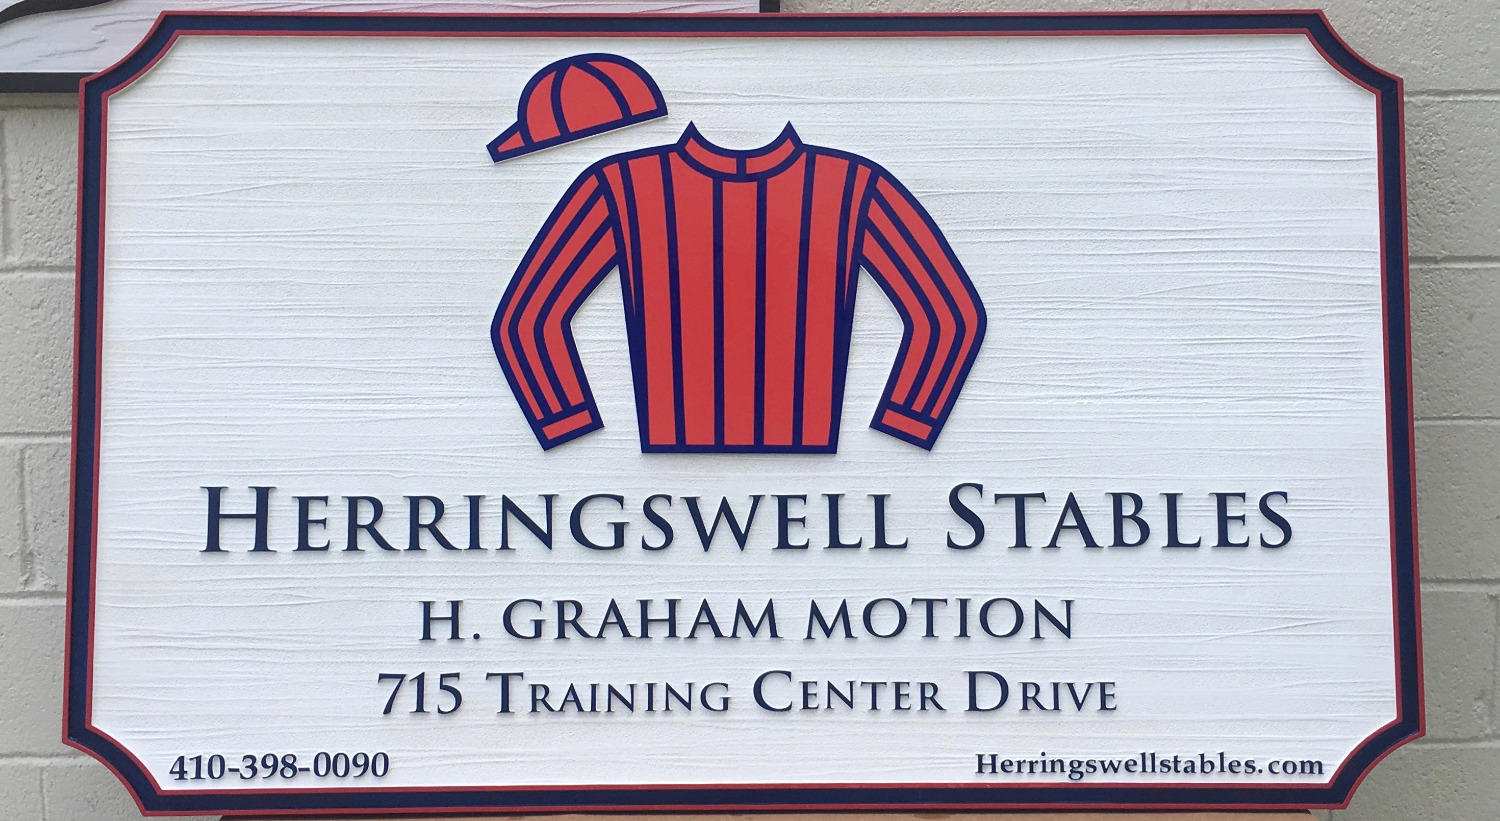 Herringswell Stables